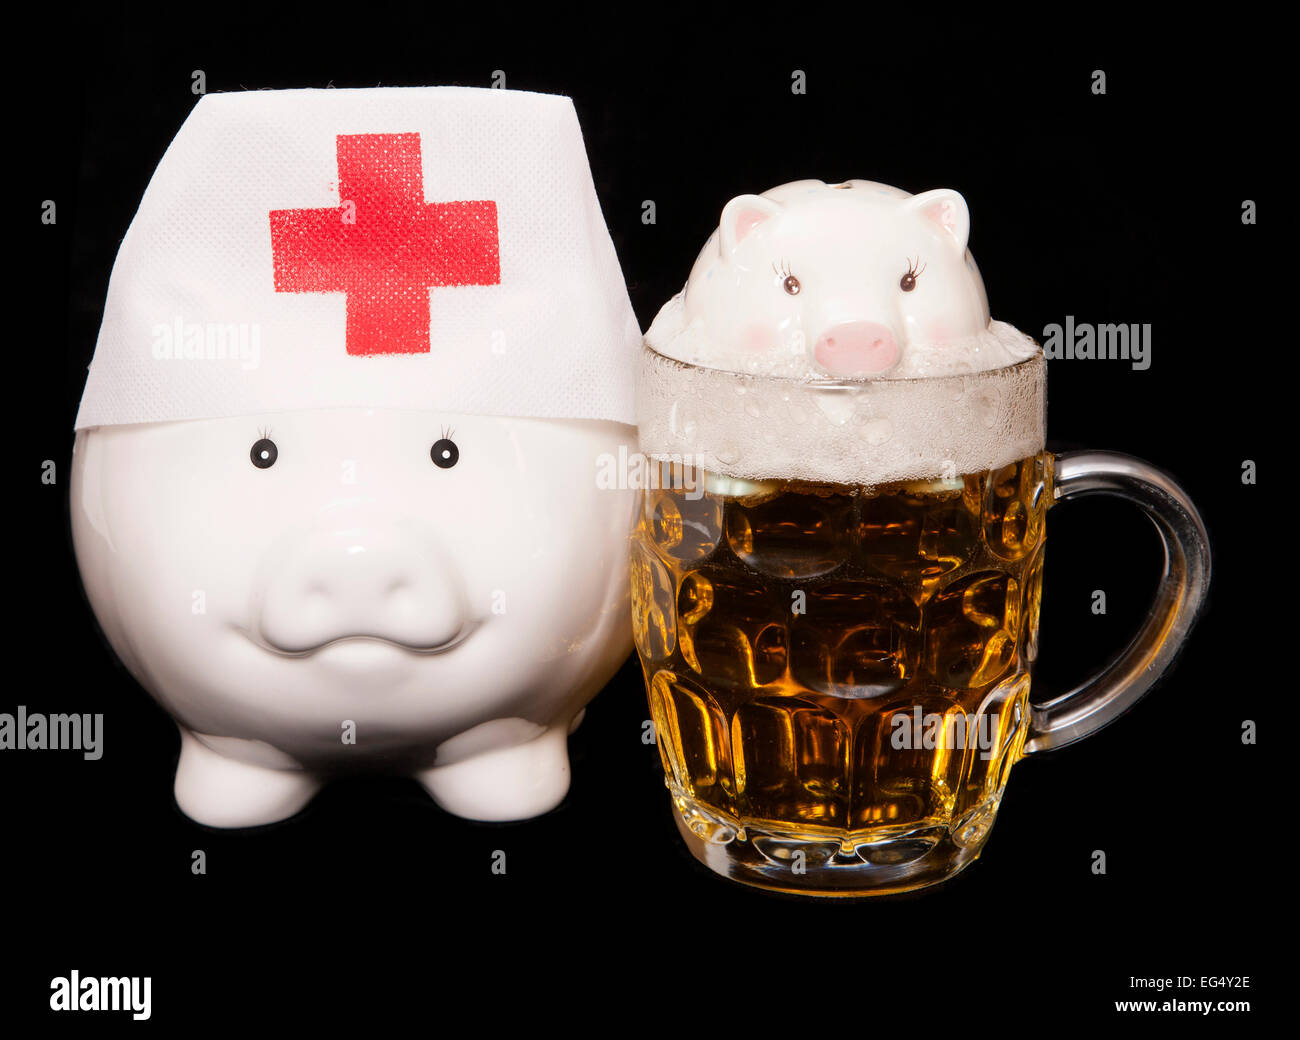 drowning in debt from drinking piggy bank cutout - Stock Image